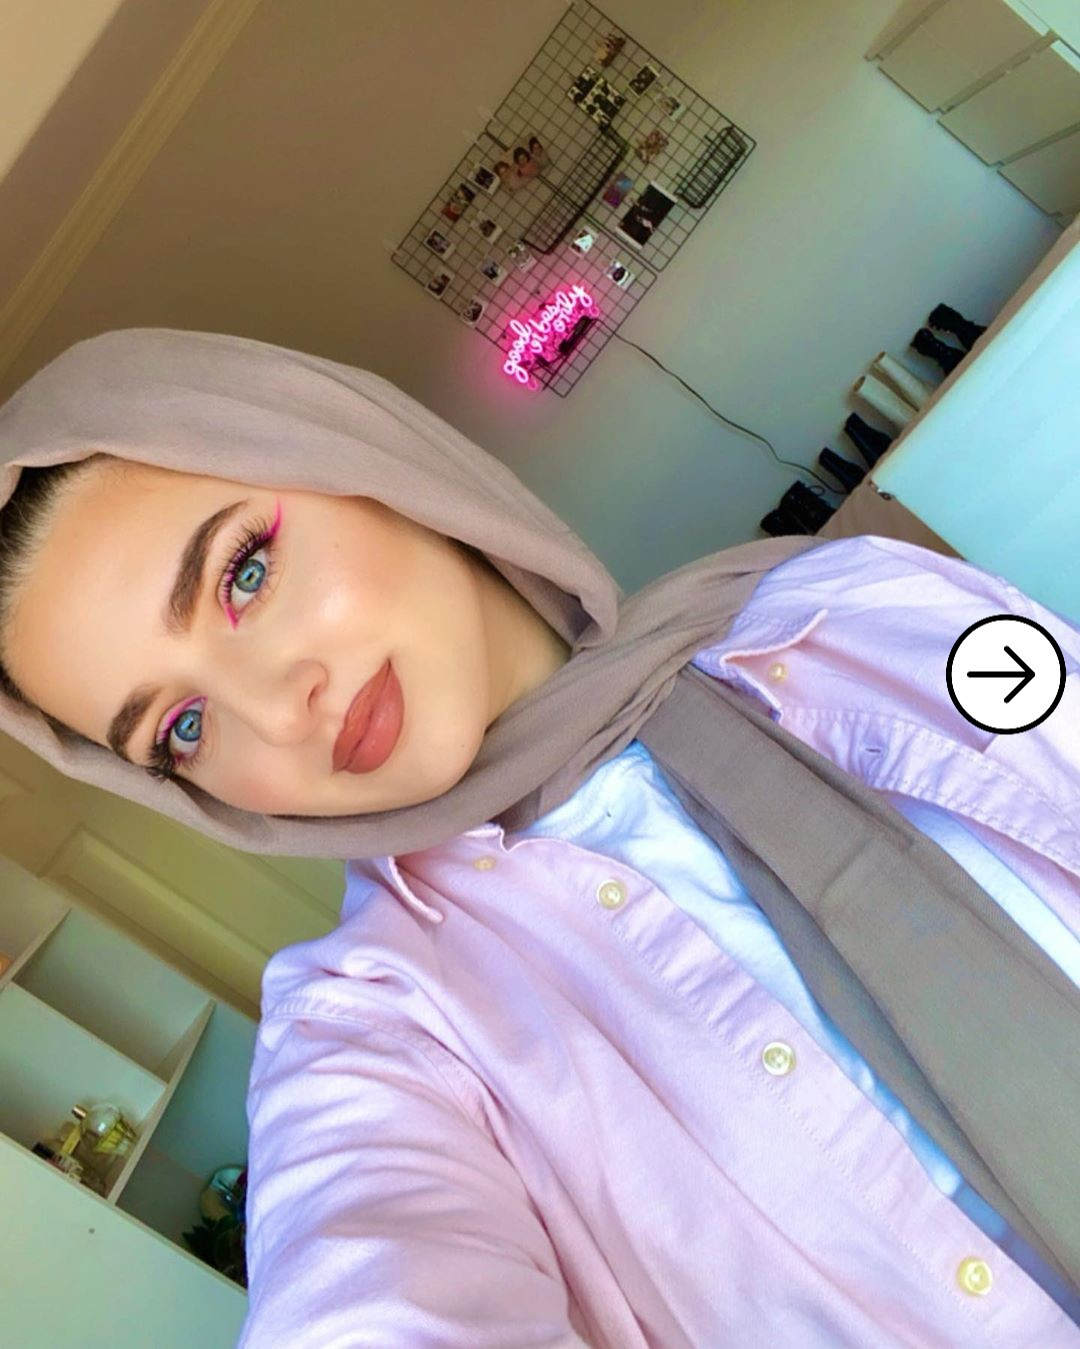 Noura Abdi: Hijabi instagram model that's breaking the internet 5